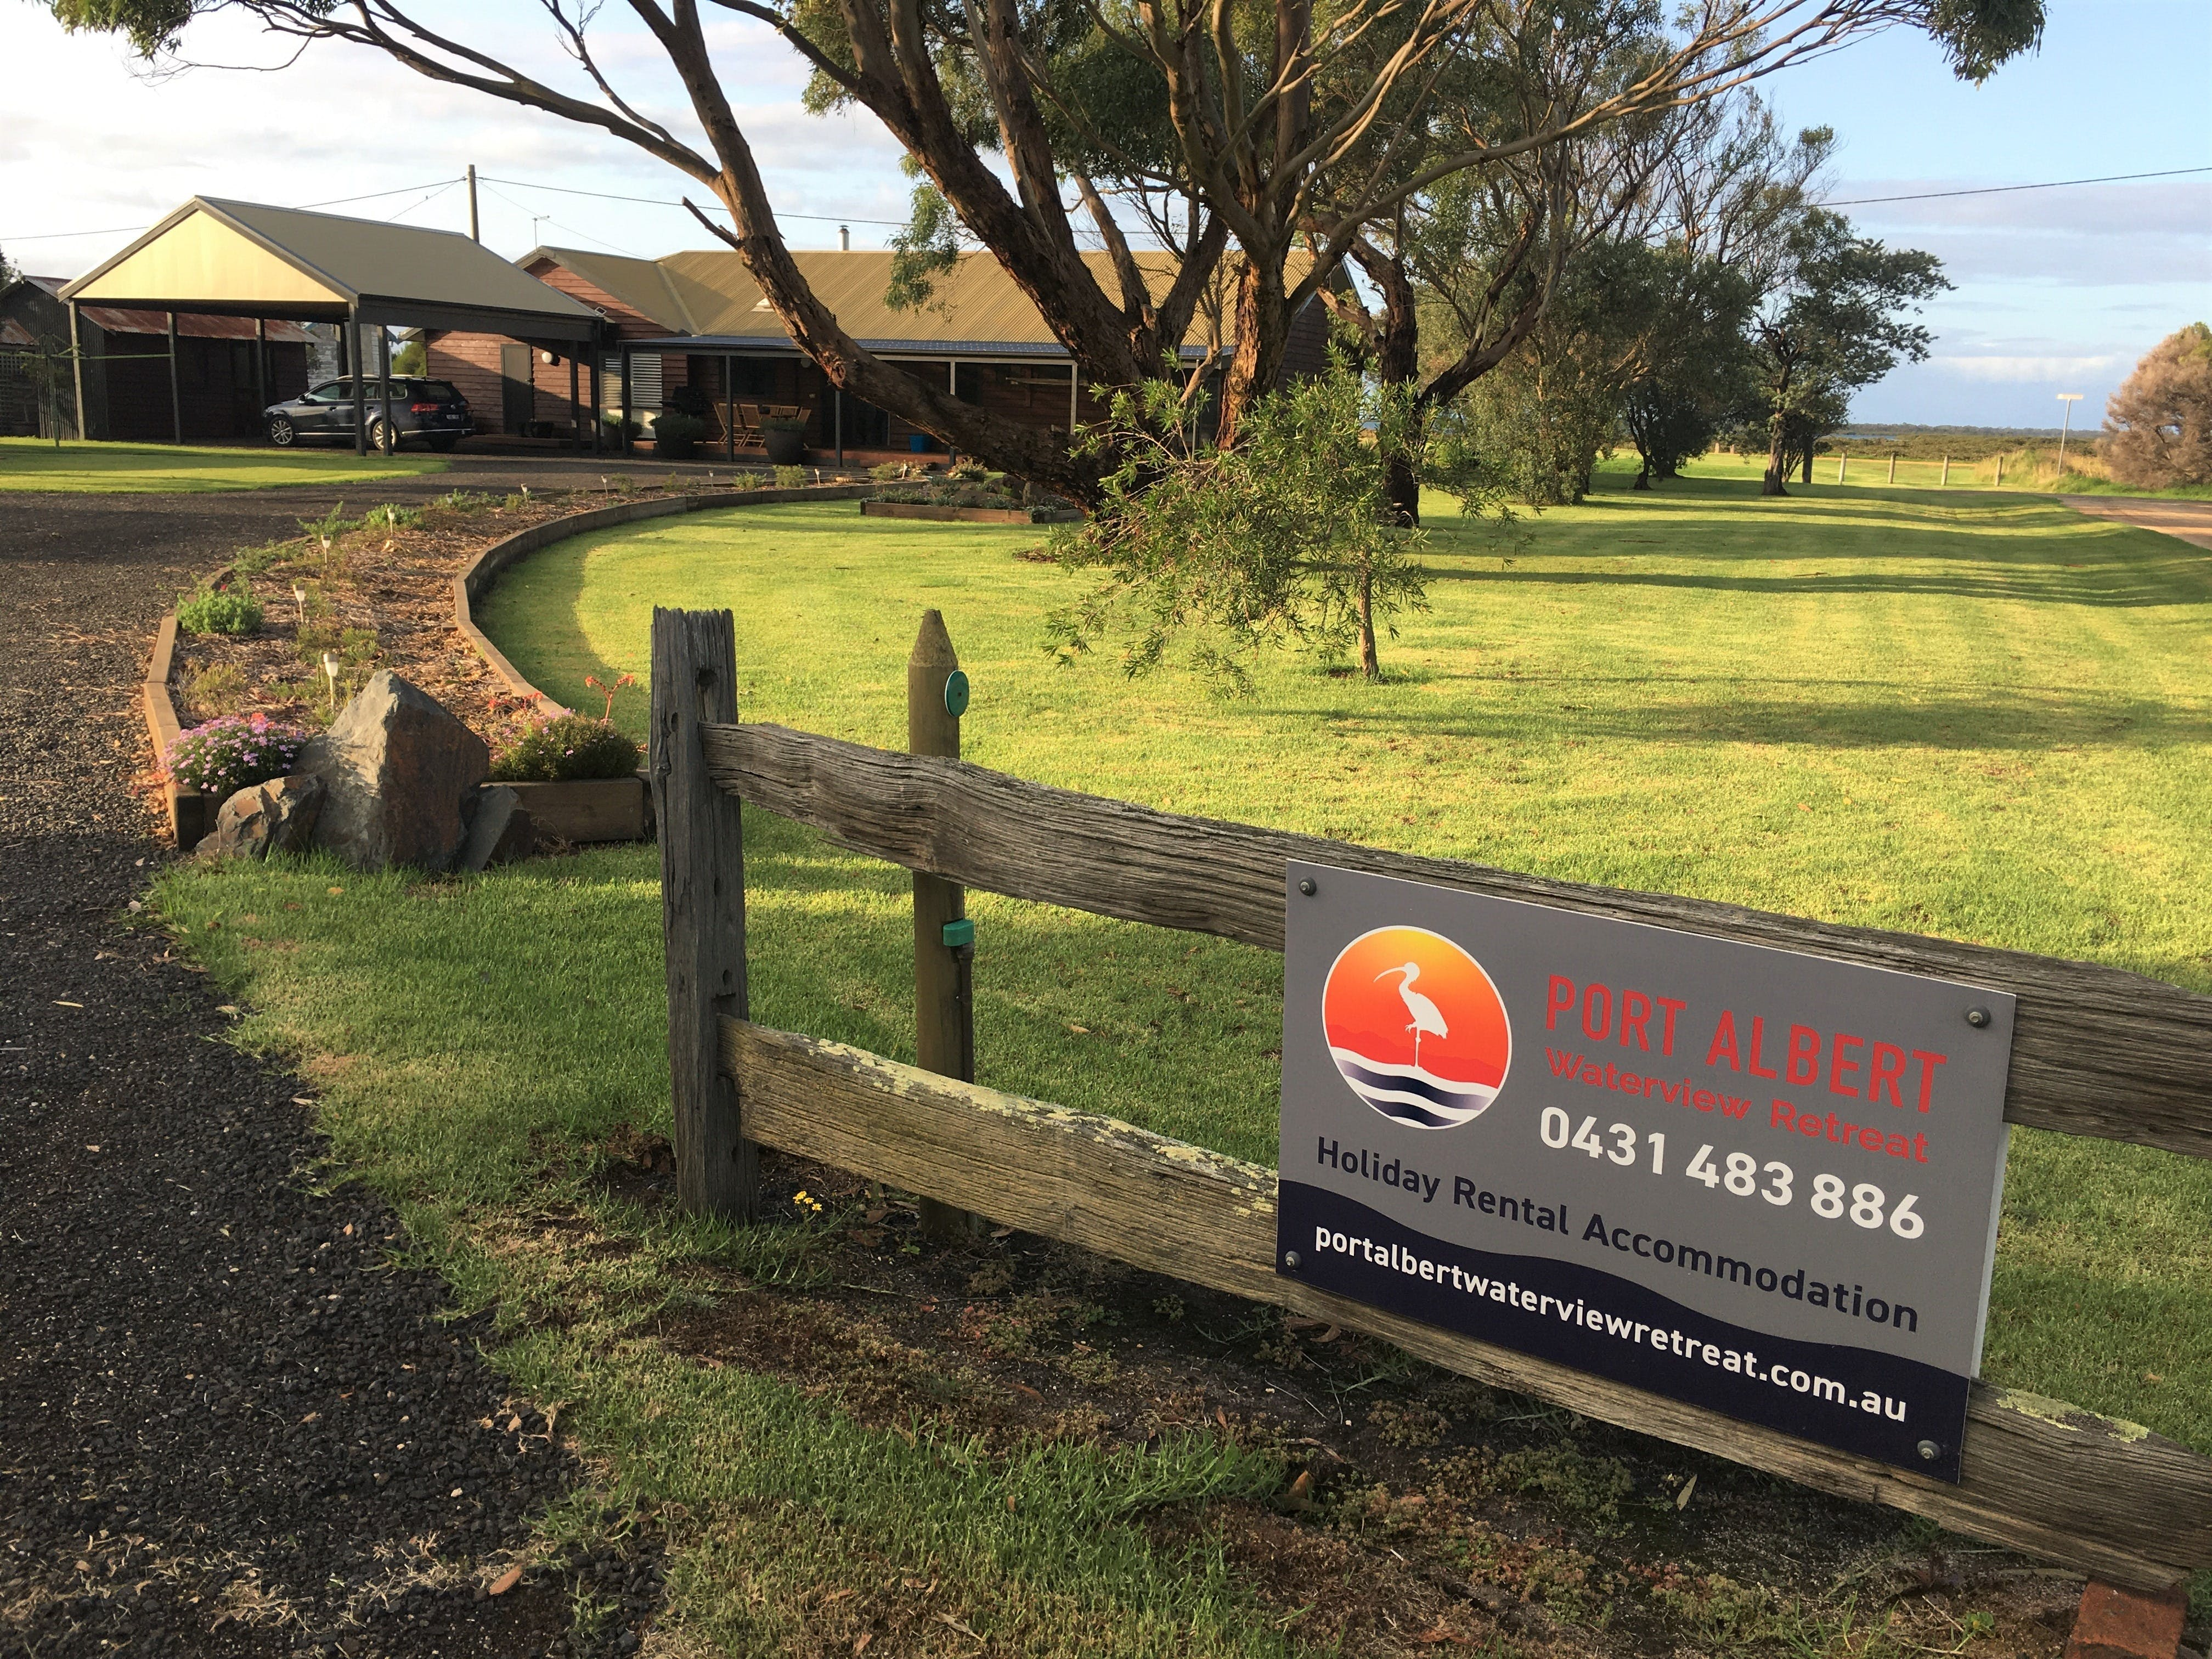 Port Albert Waterview Retreat - Yarra Valley Accommodation